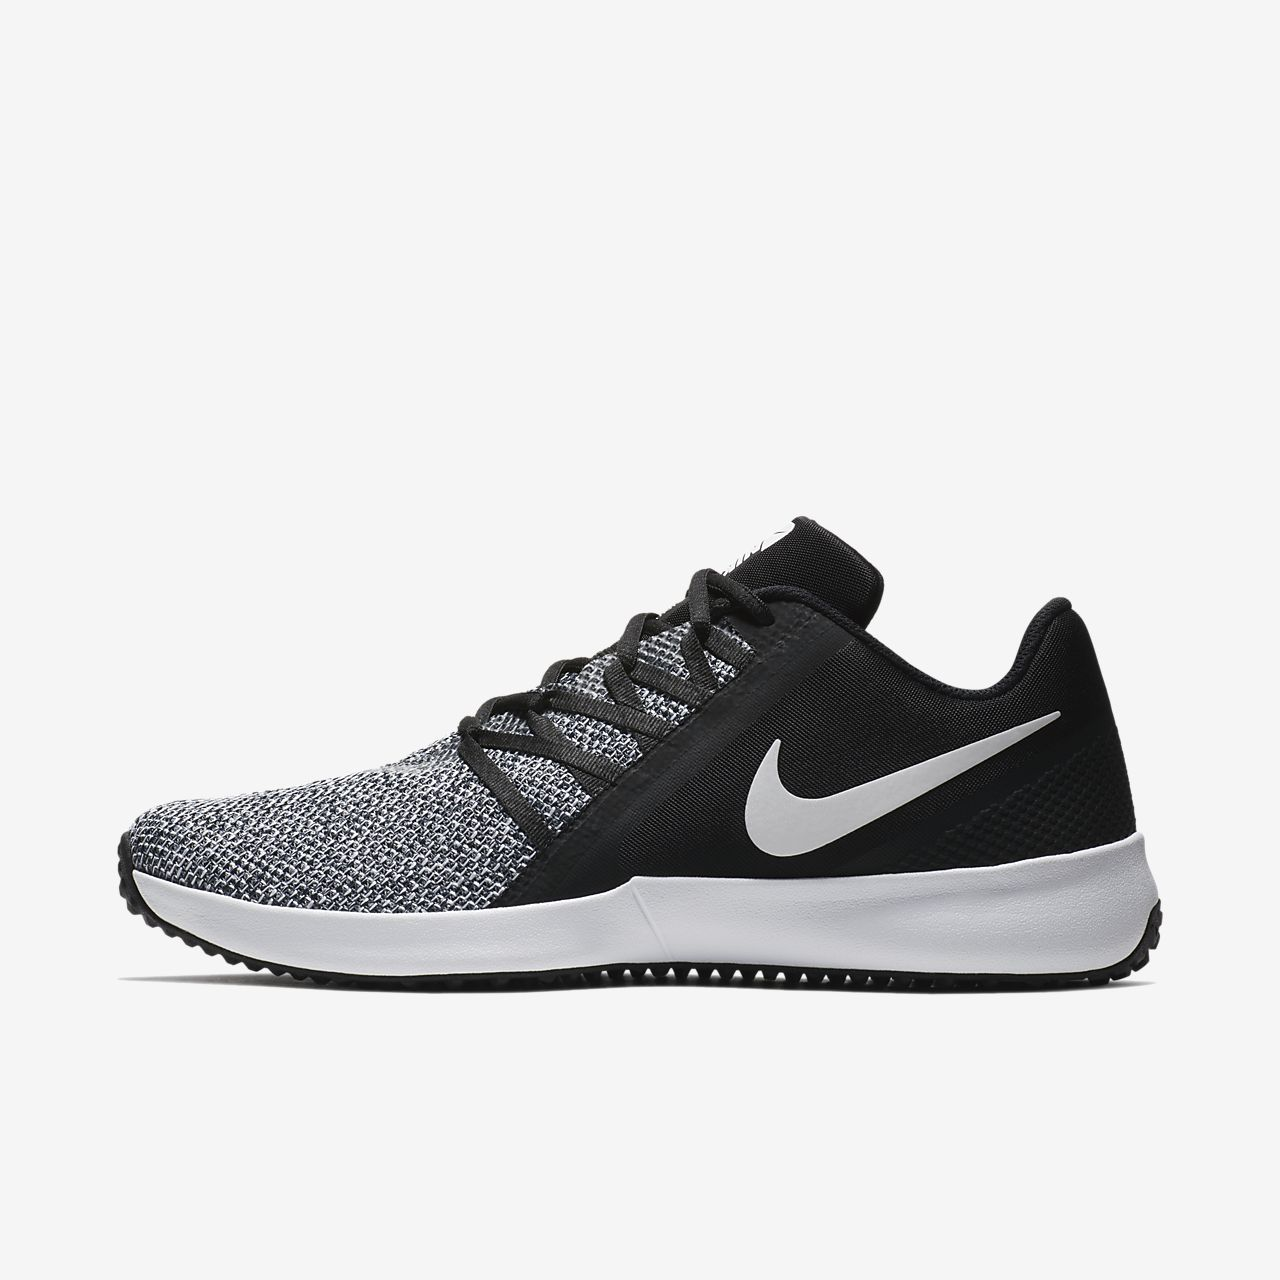 ... Nike Varsity Complete Trainer Men's Training Shoe